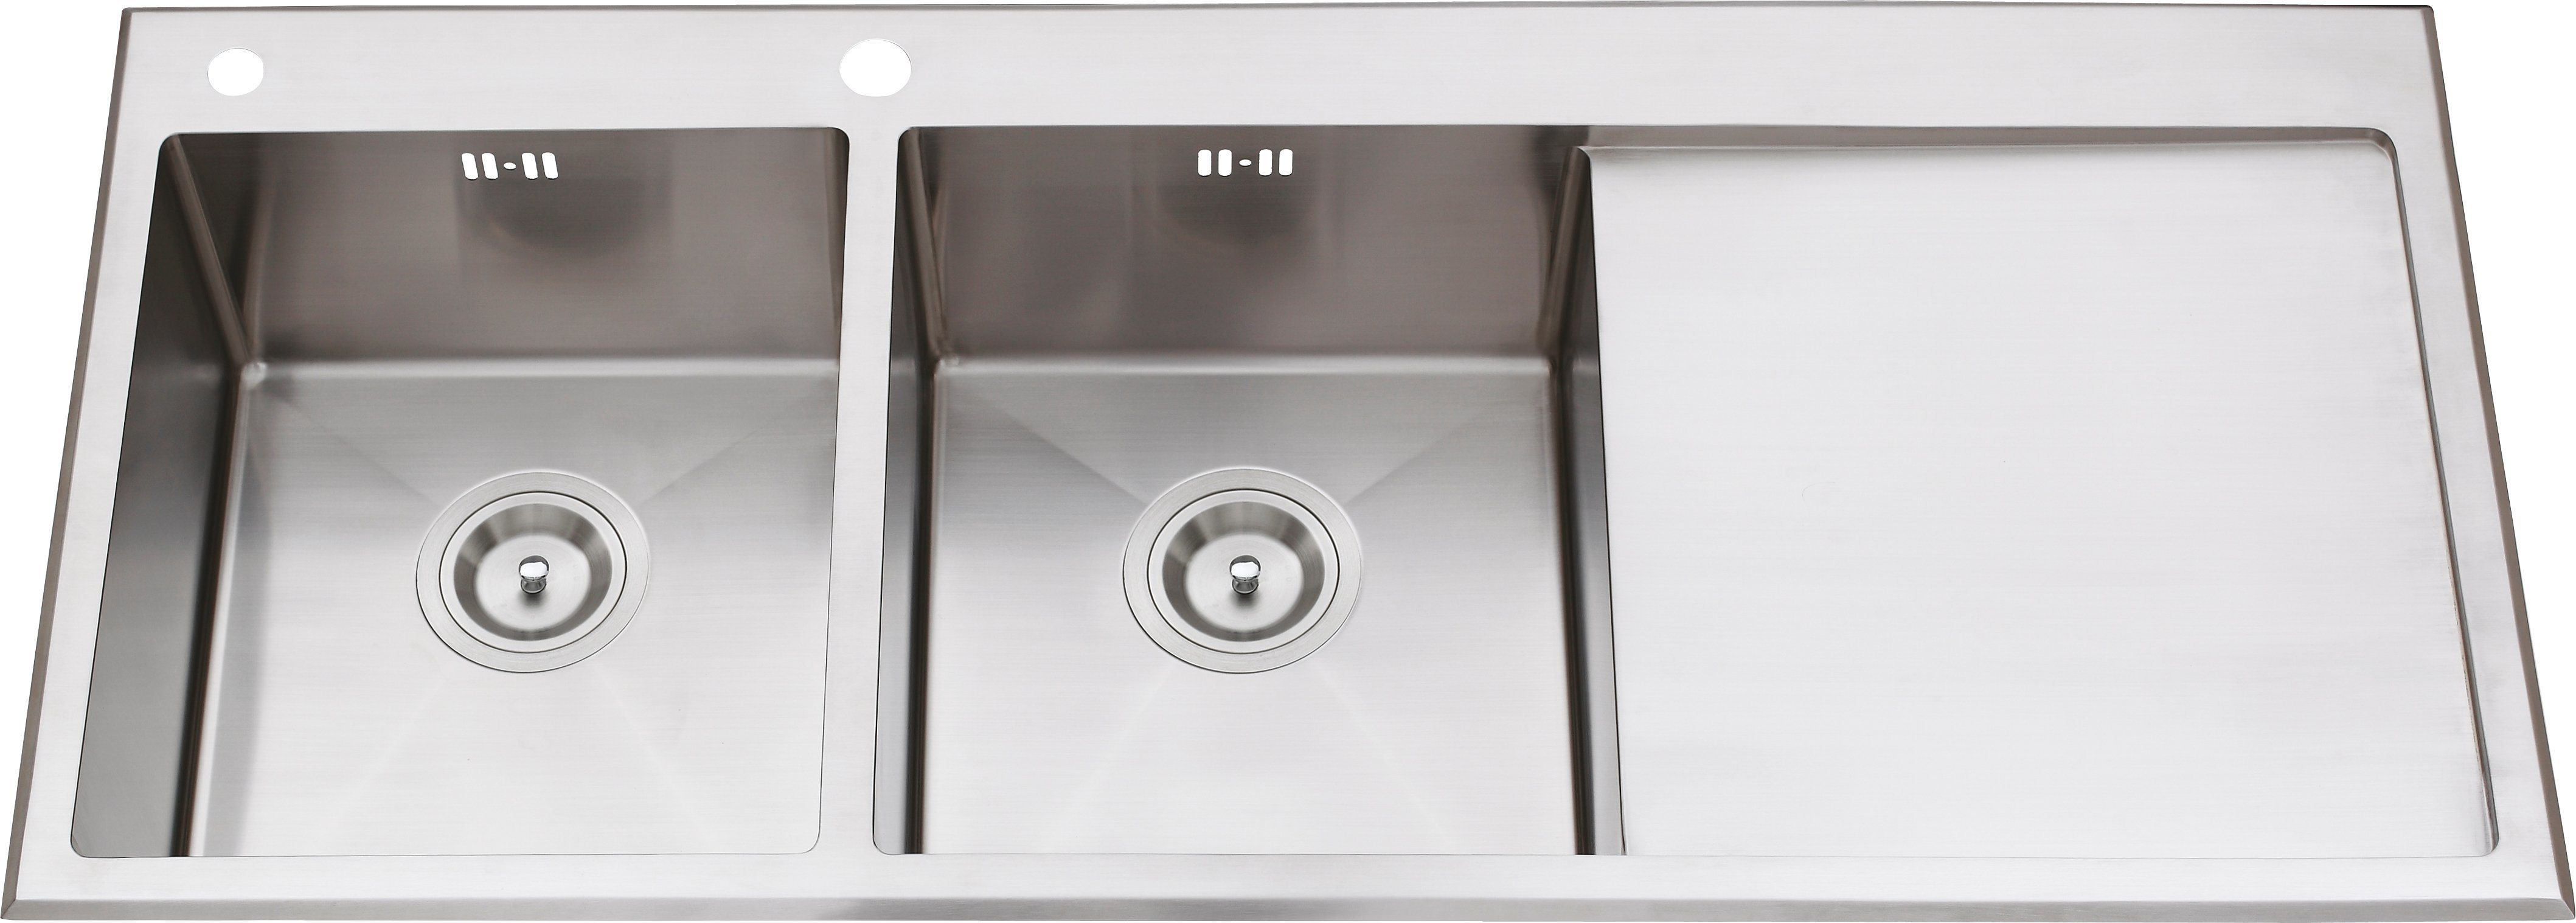 Residential Handmade Stainless Steel Kitchen Sink China Kitchen Sink Stainless Steel Kitchen Sink Made In China Com